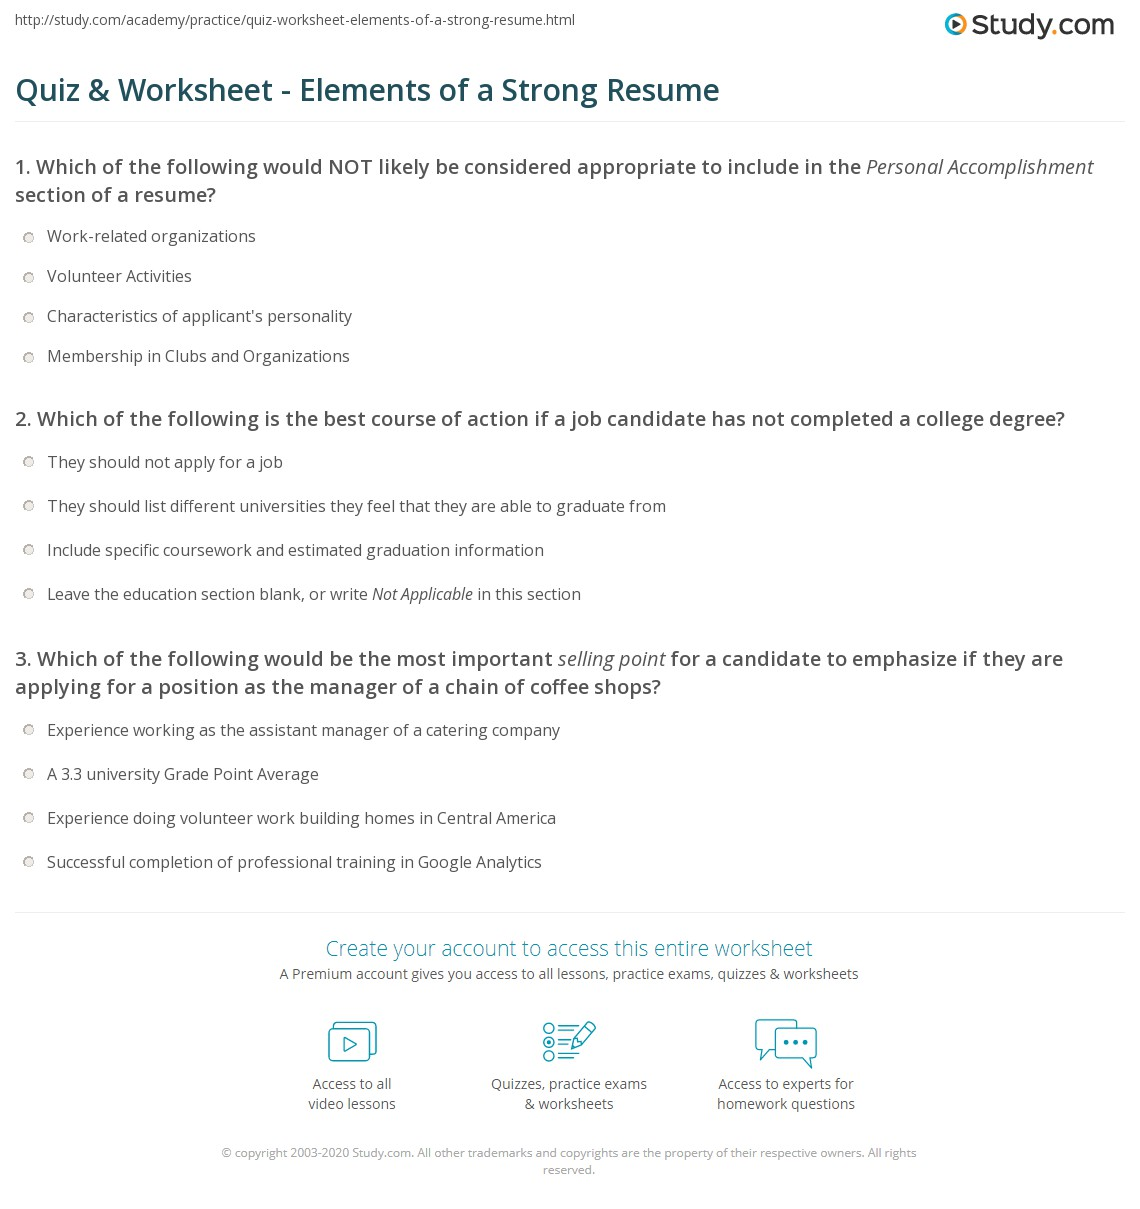 quiz worksheet elements of a strong resume study com